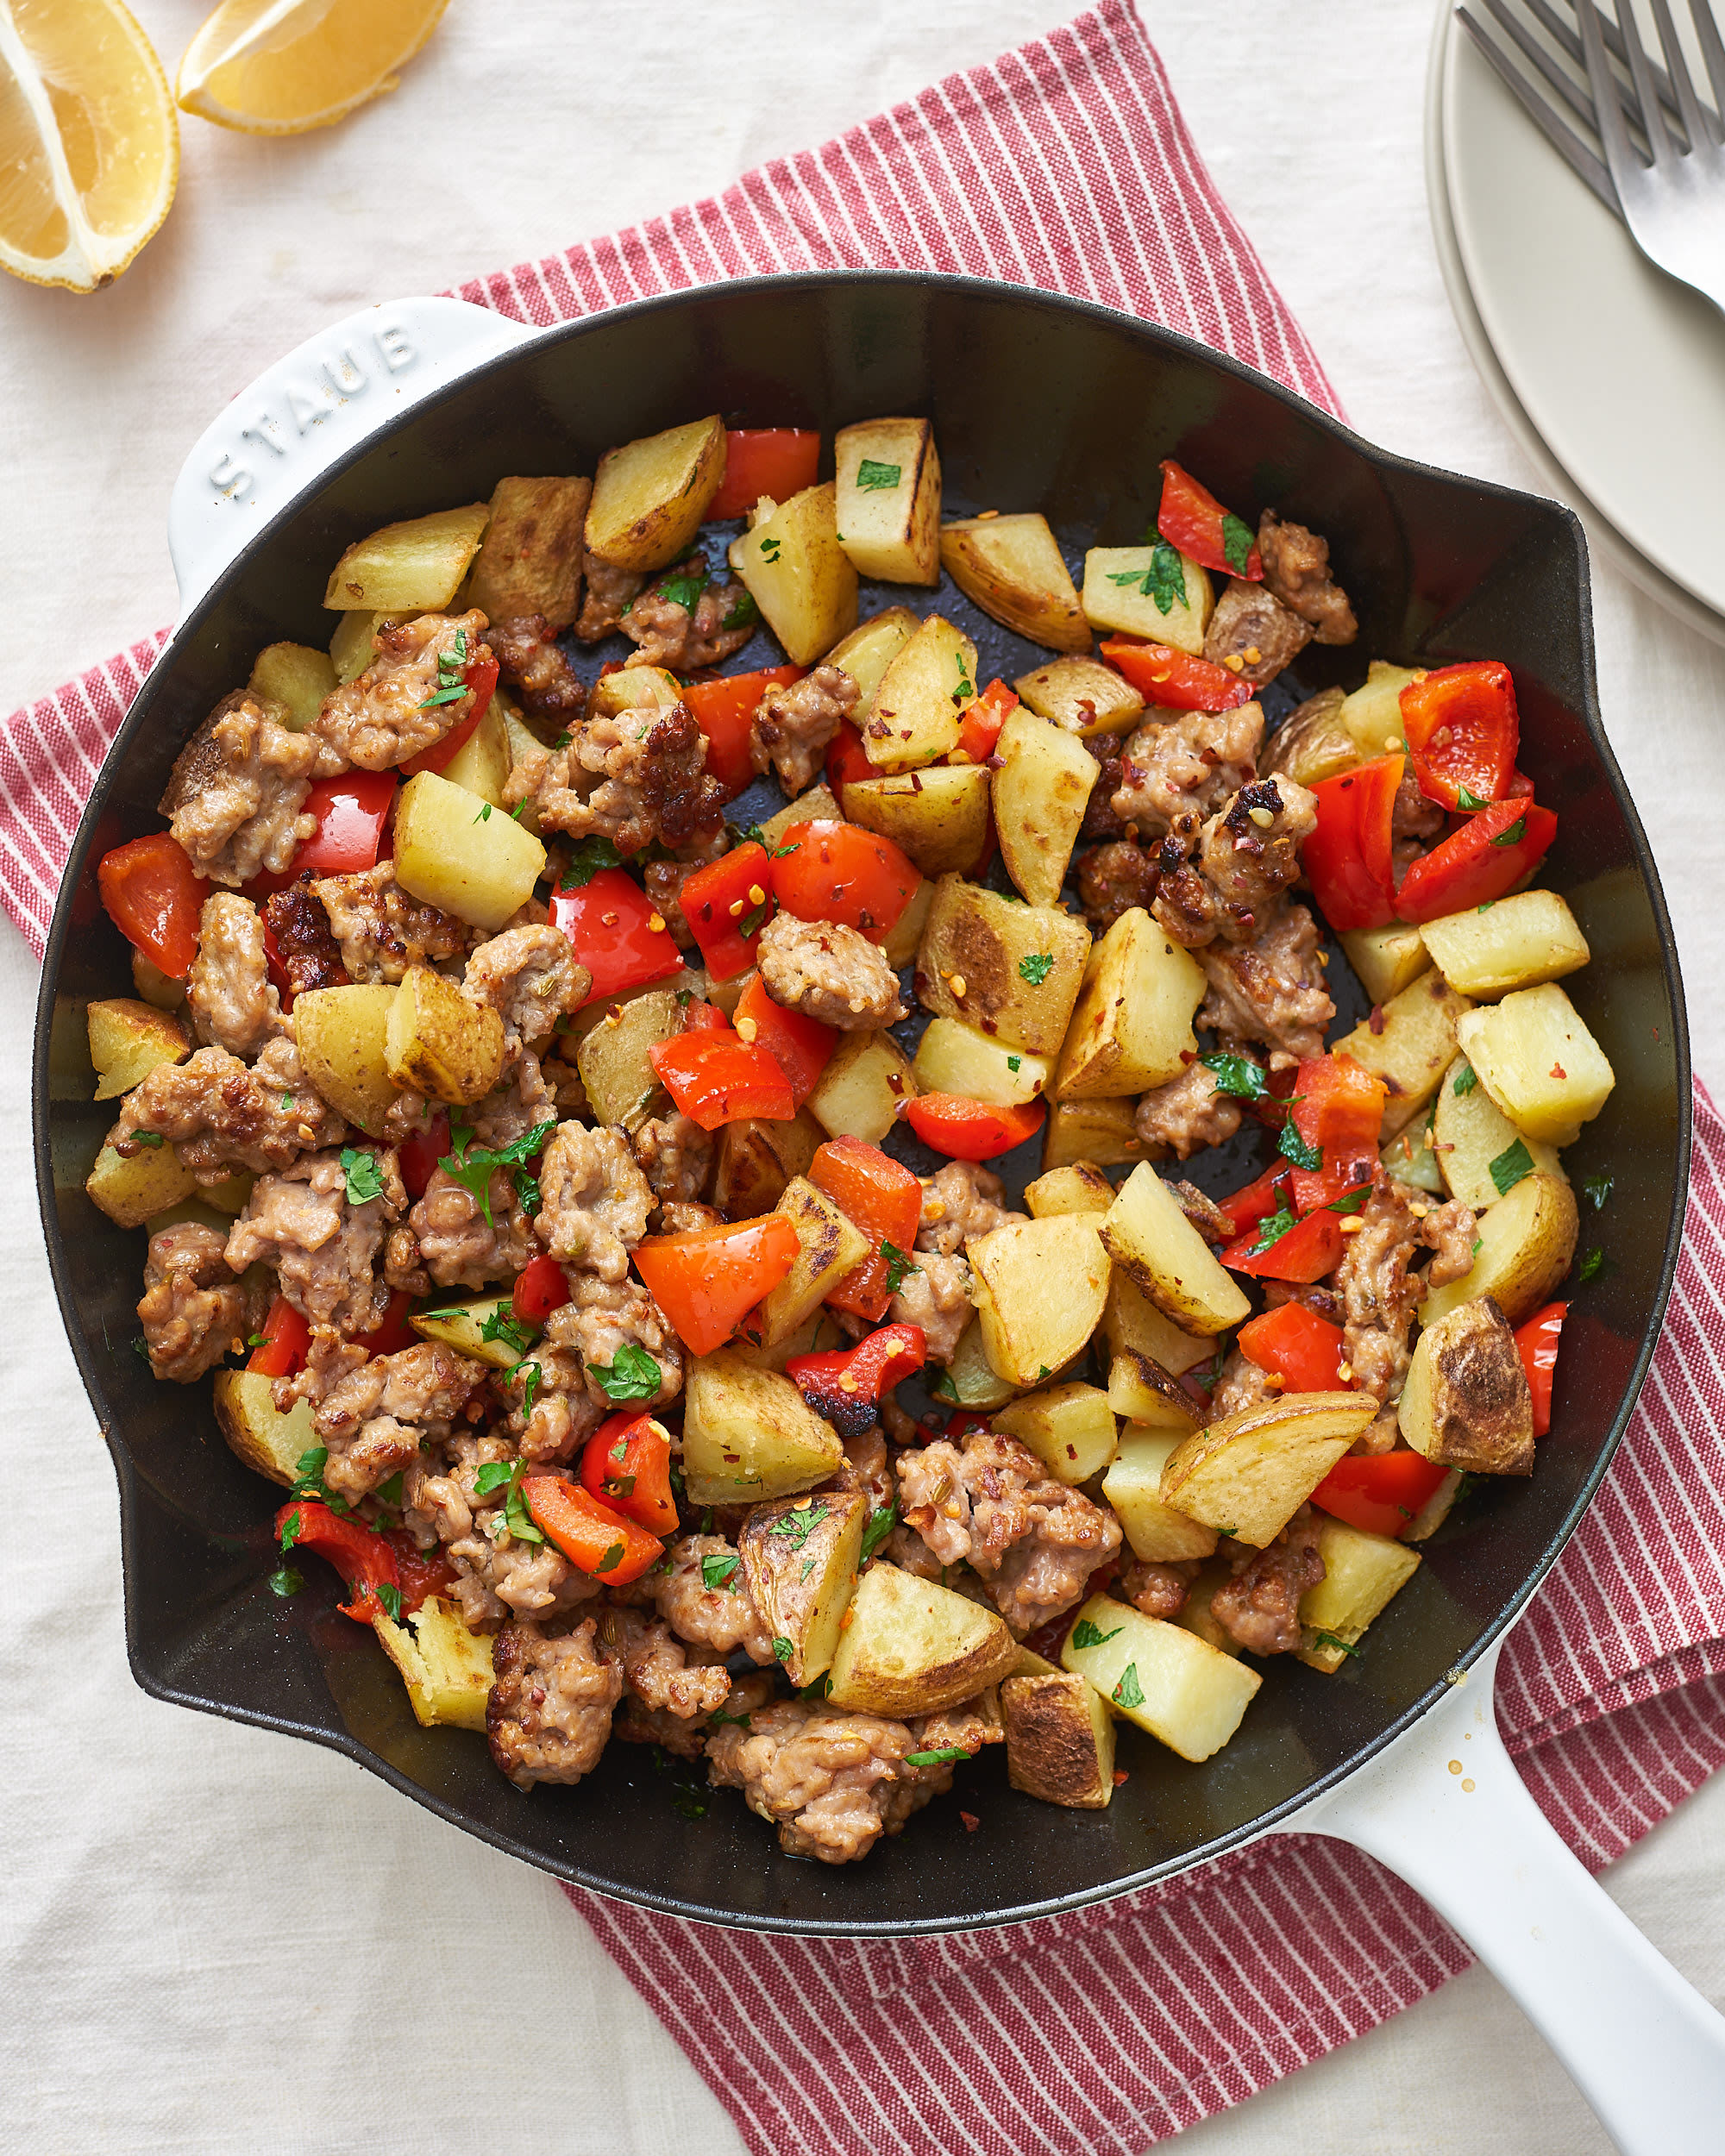 Recipe: Fried Potatoes and Sausage Skillet